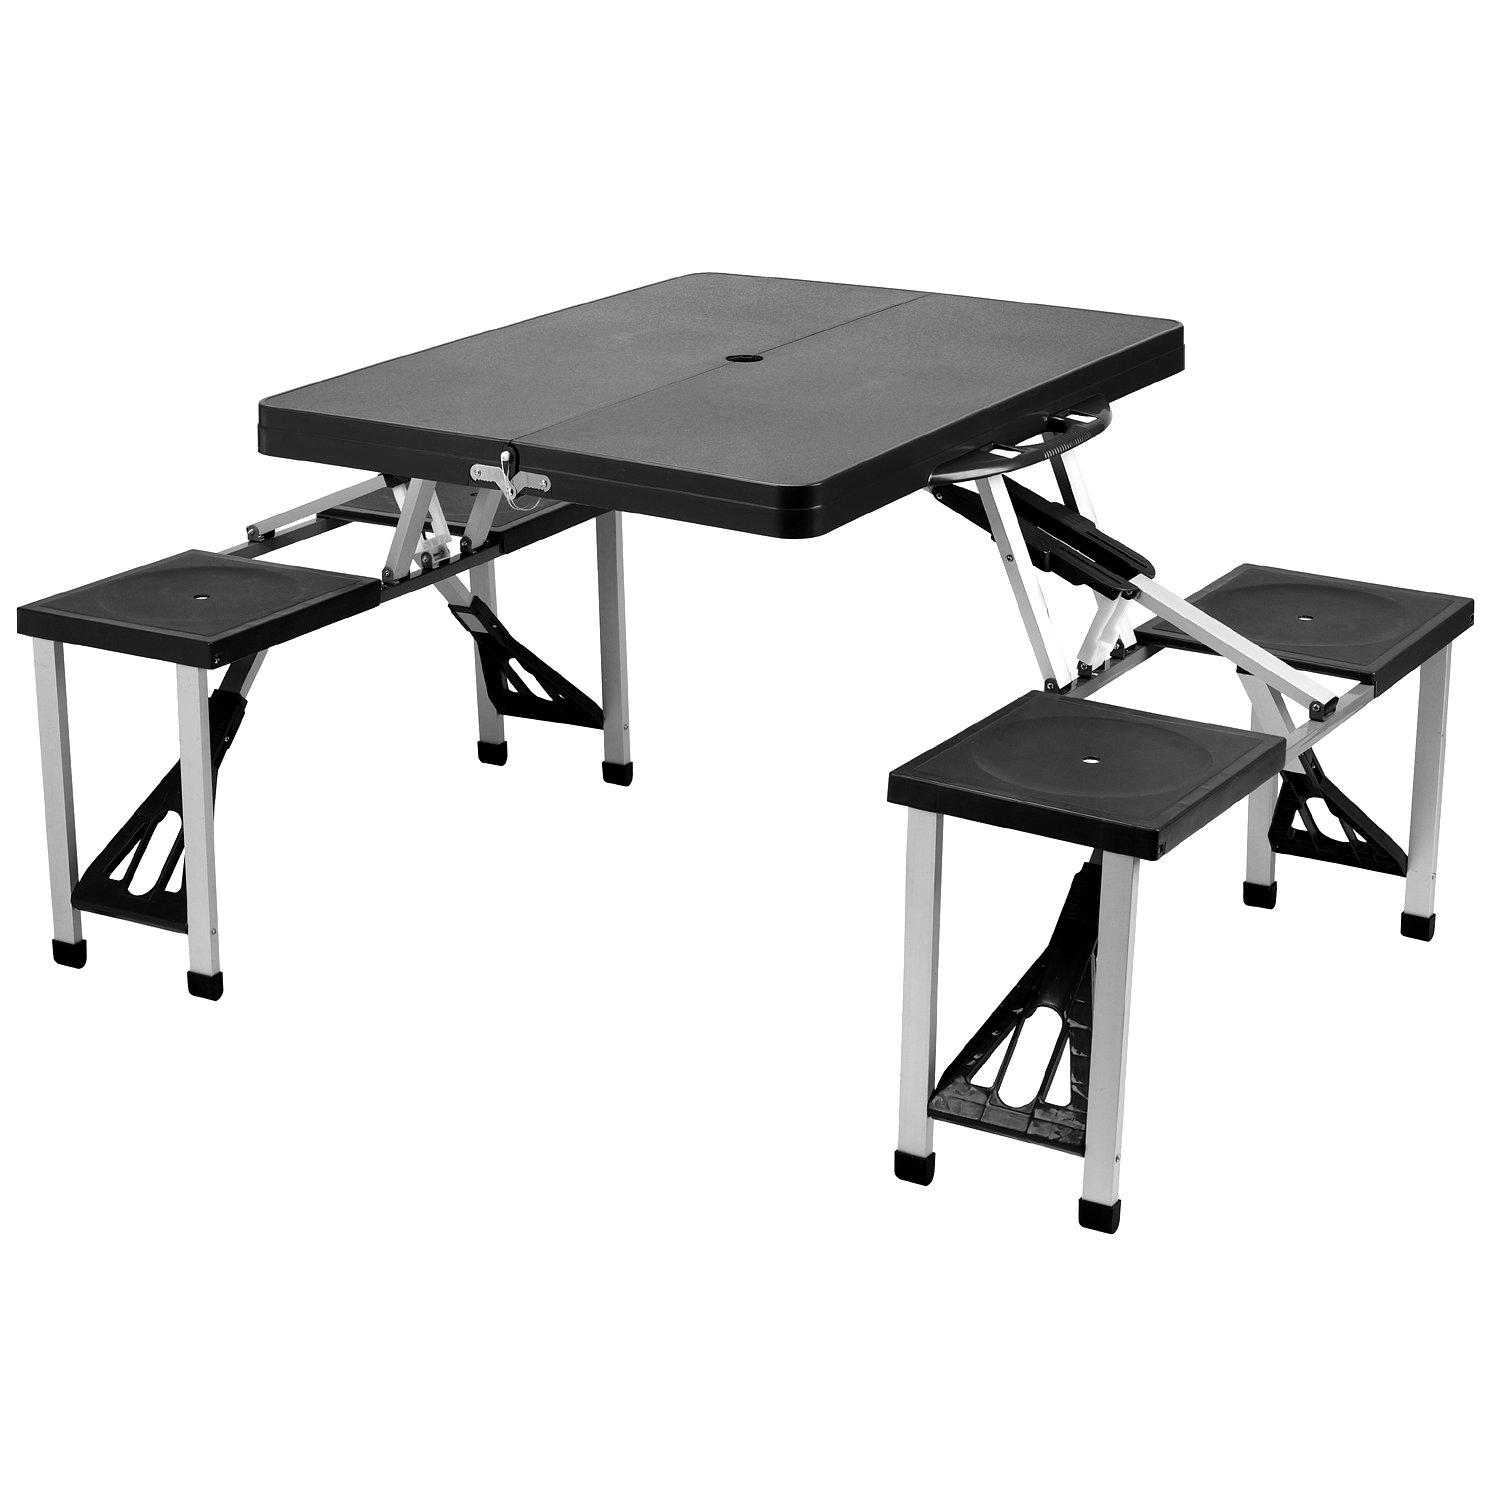 Elegant Picnic At Ascot Portable Folding Outdoor Picnic Table With 4 Seats   Black